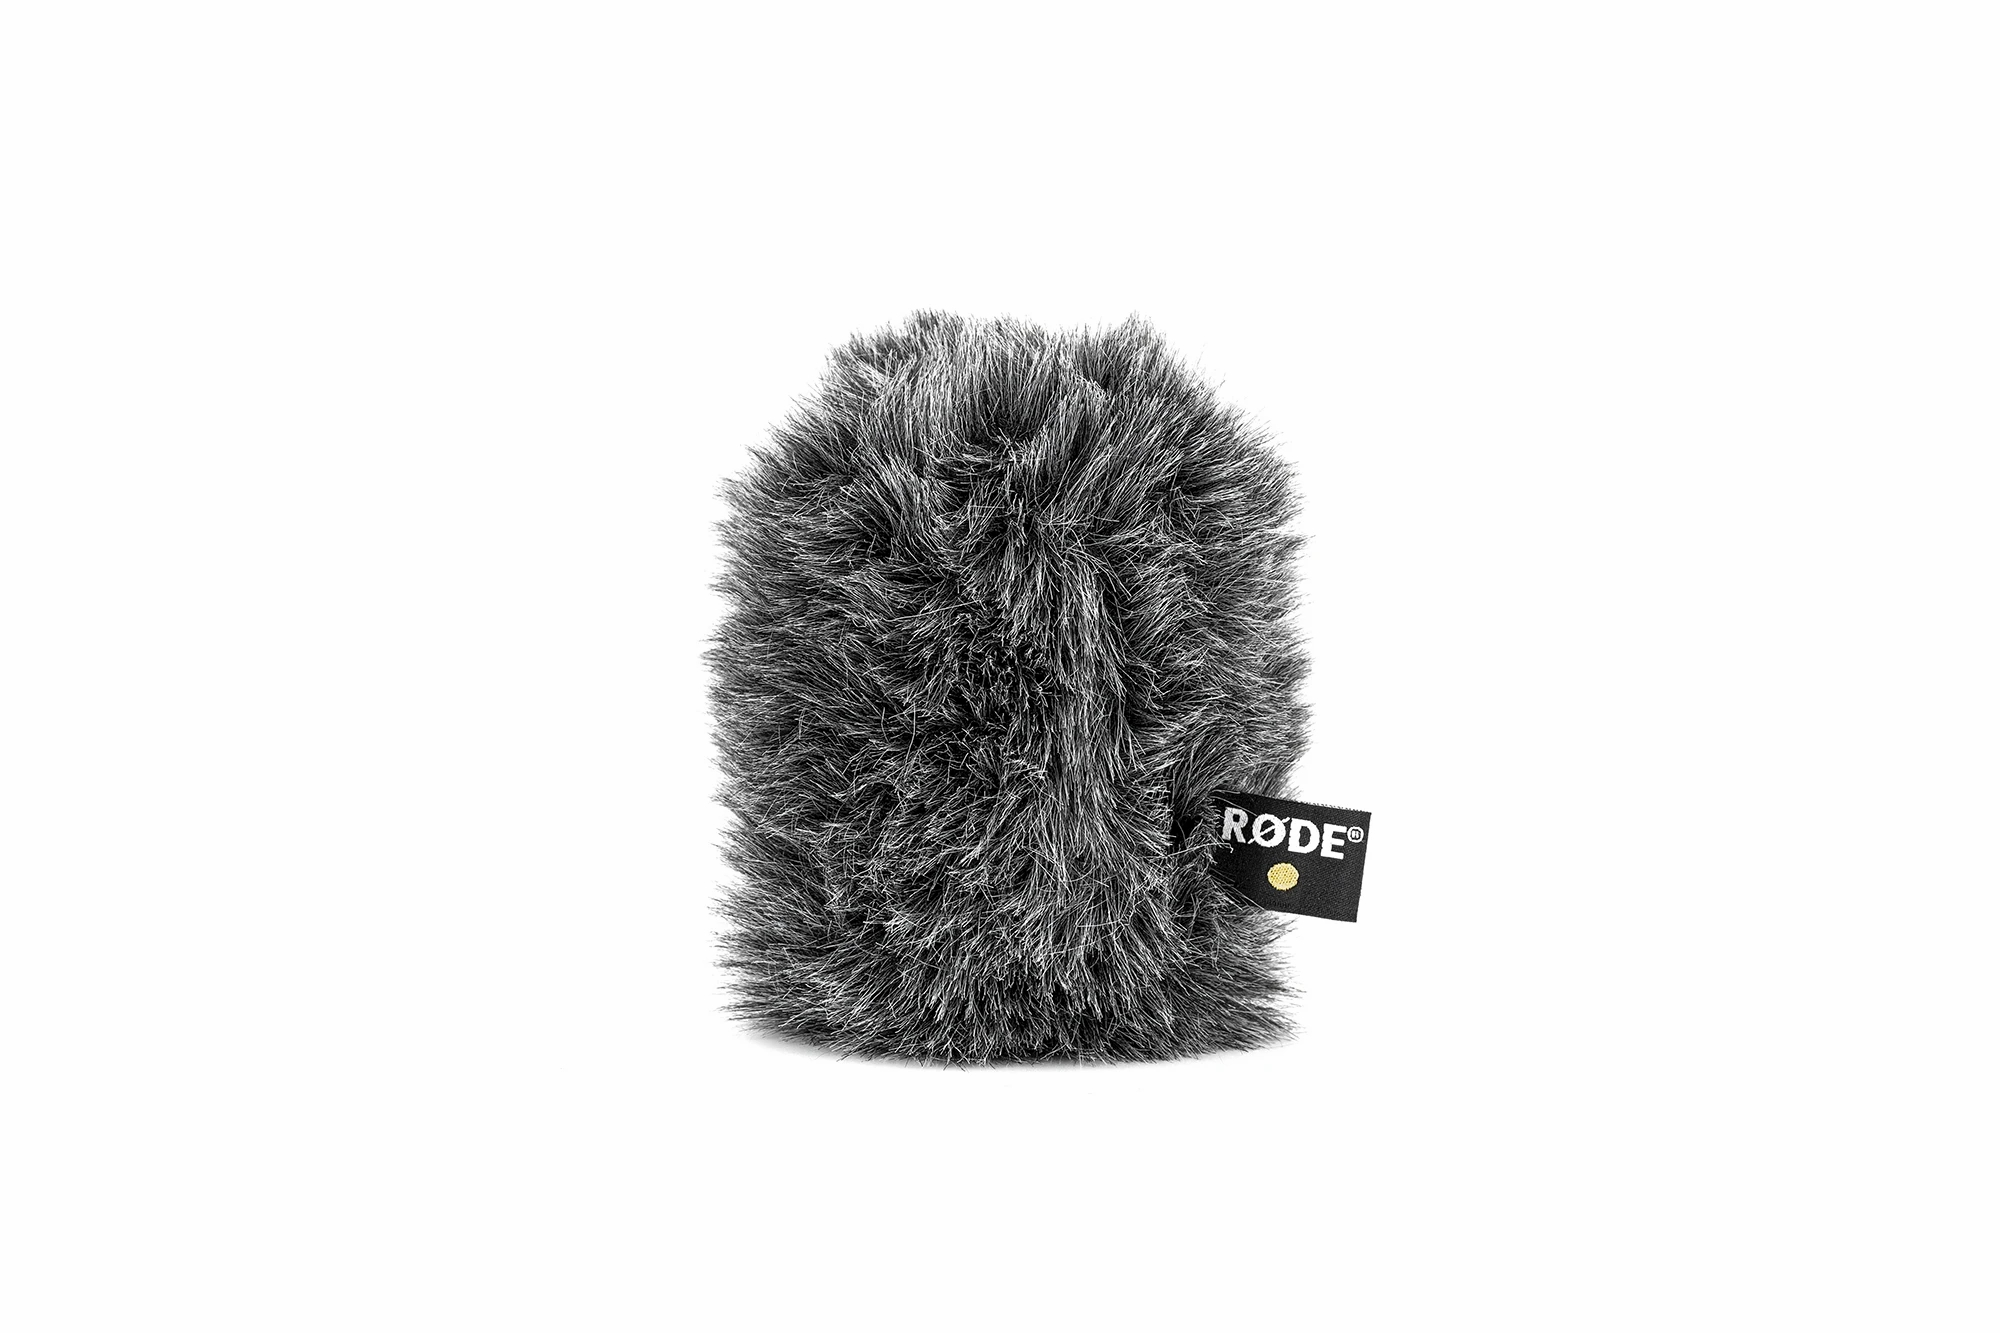 Original Rode VideoMic NTG Interview Record Microphone